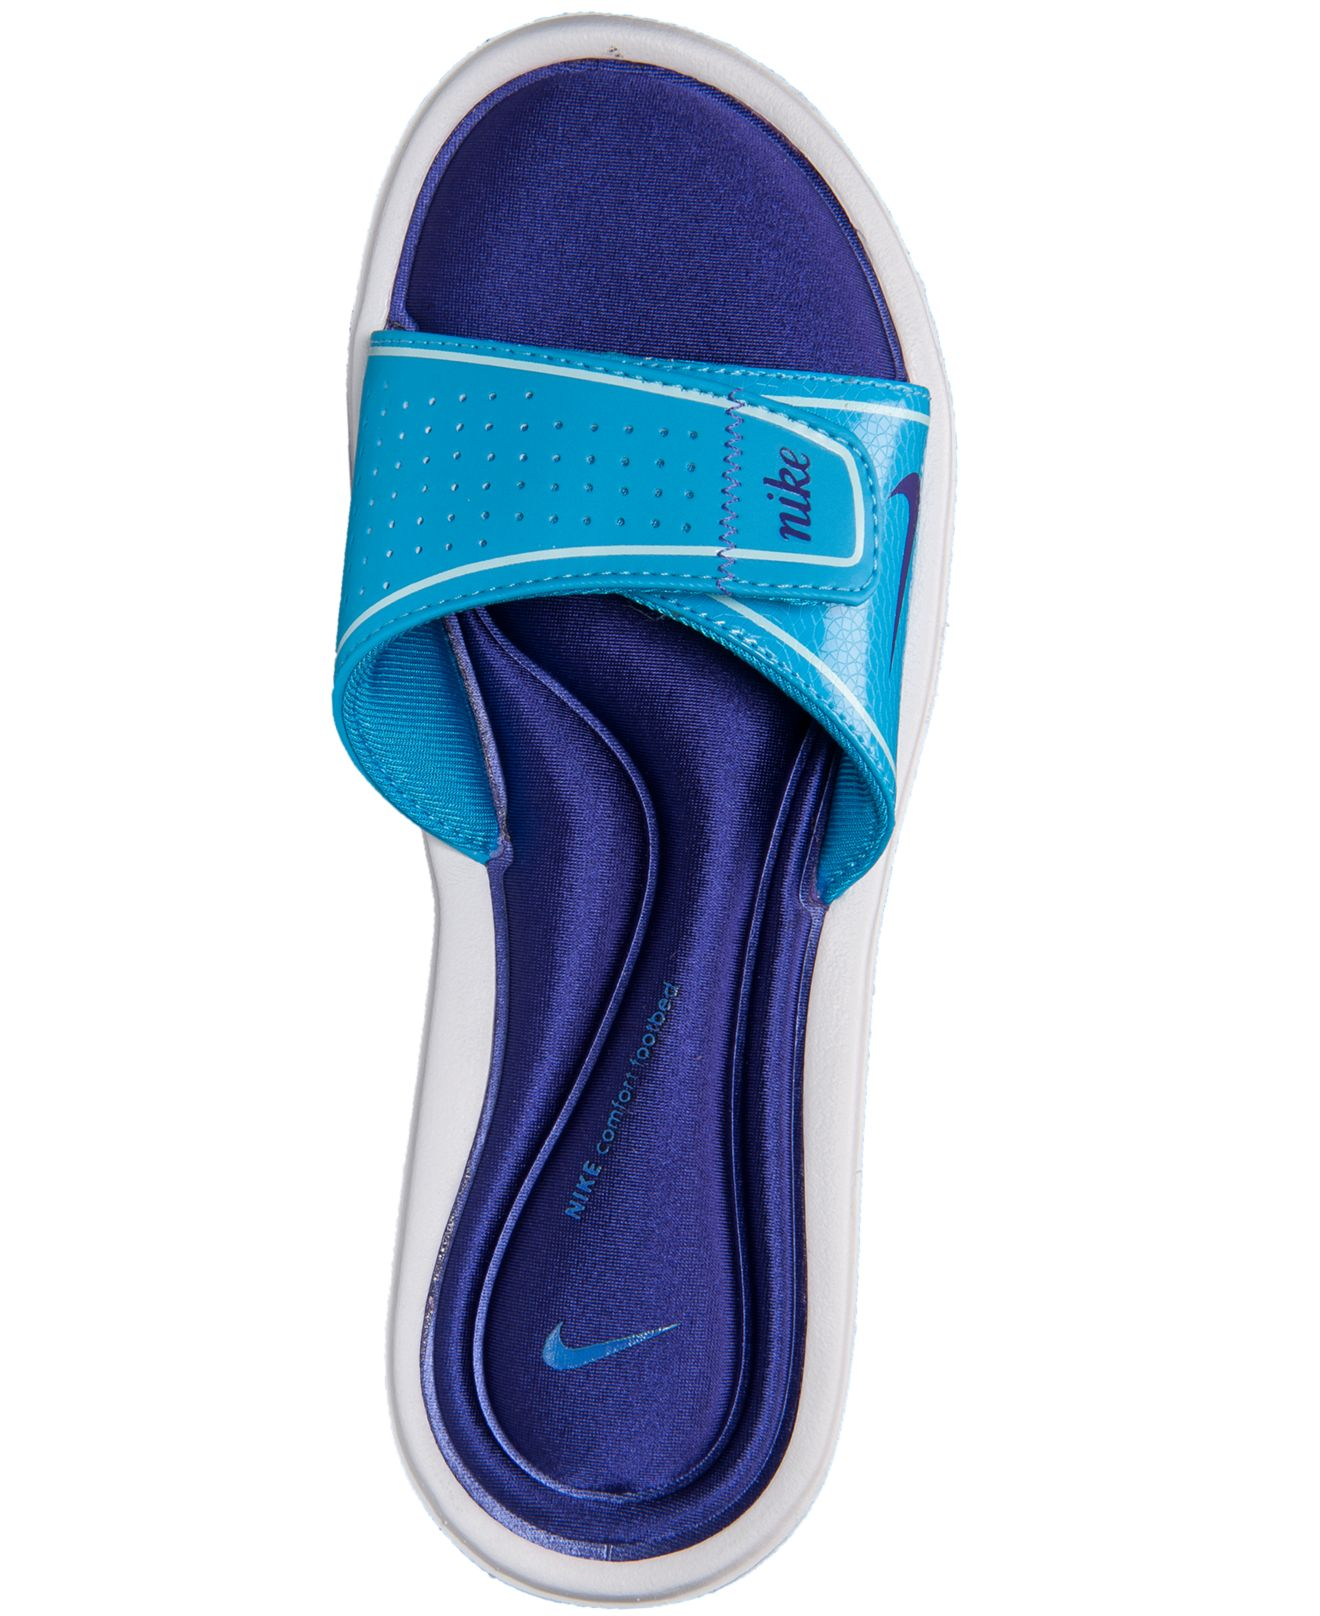 8bb804cc1e69 Lyst - Nike Women s Comfort Slide Sandals From Finish Line in Blue